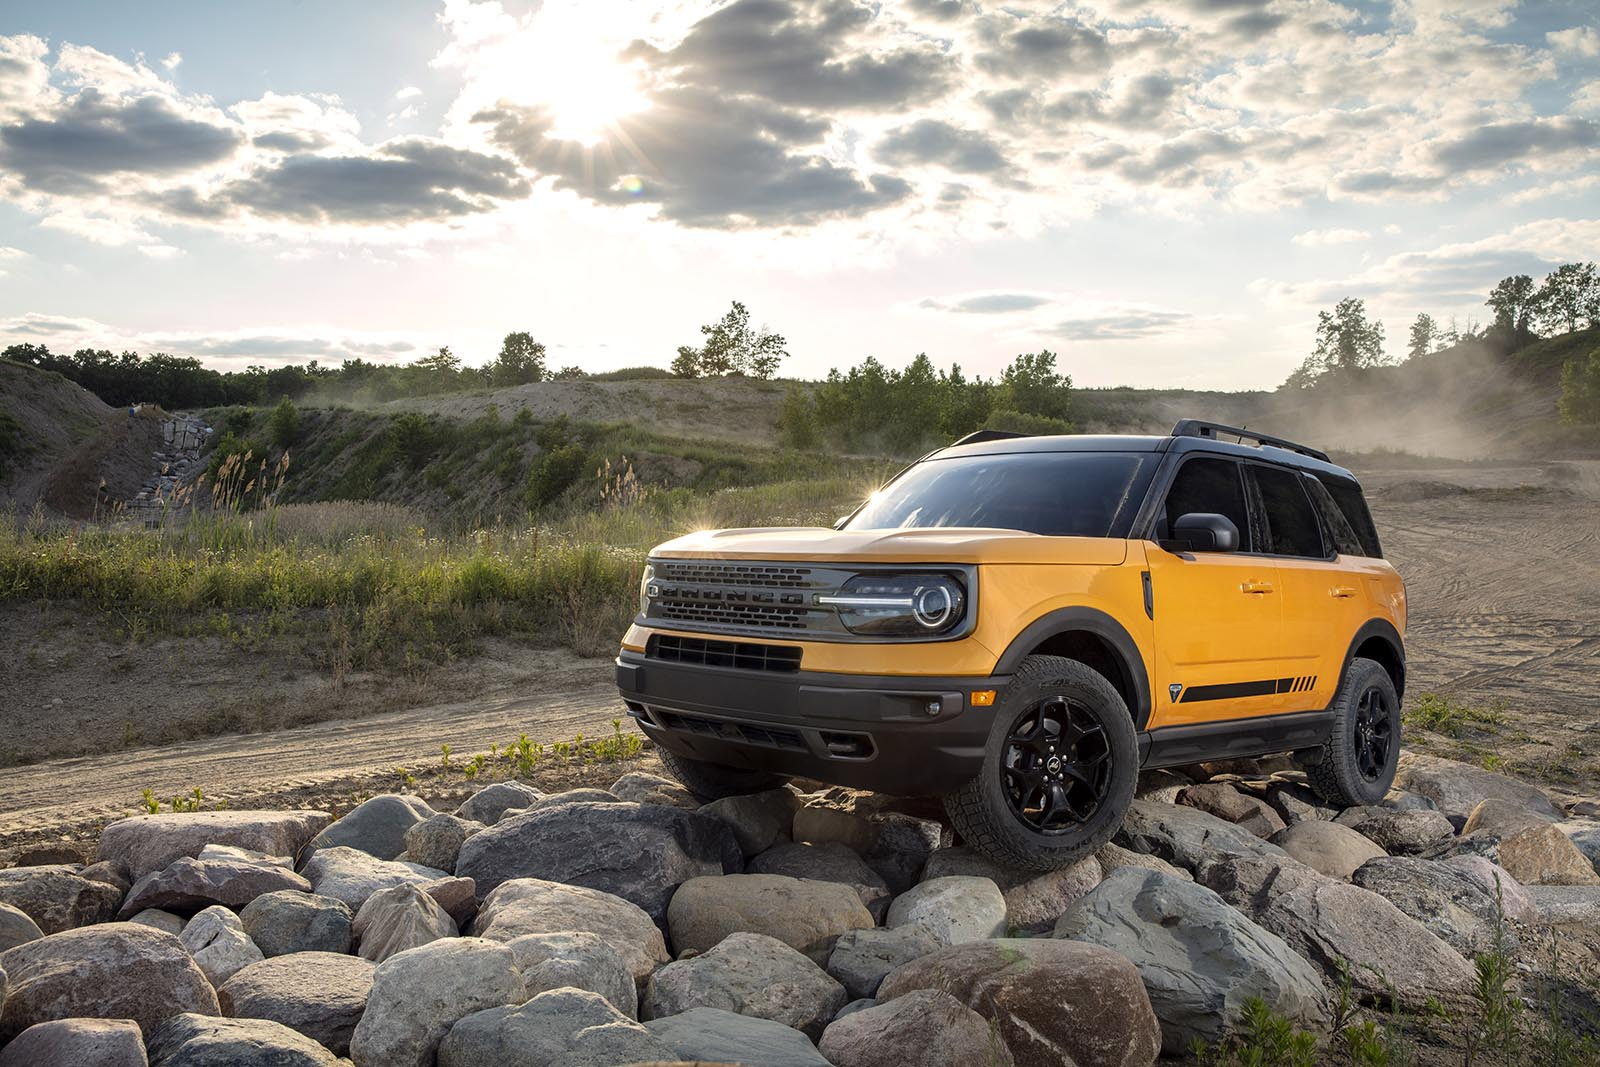 First Look: 2021 Ford Bronco Sport   TheDetroitBureau.com